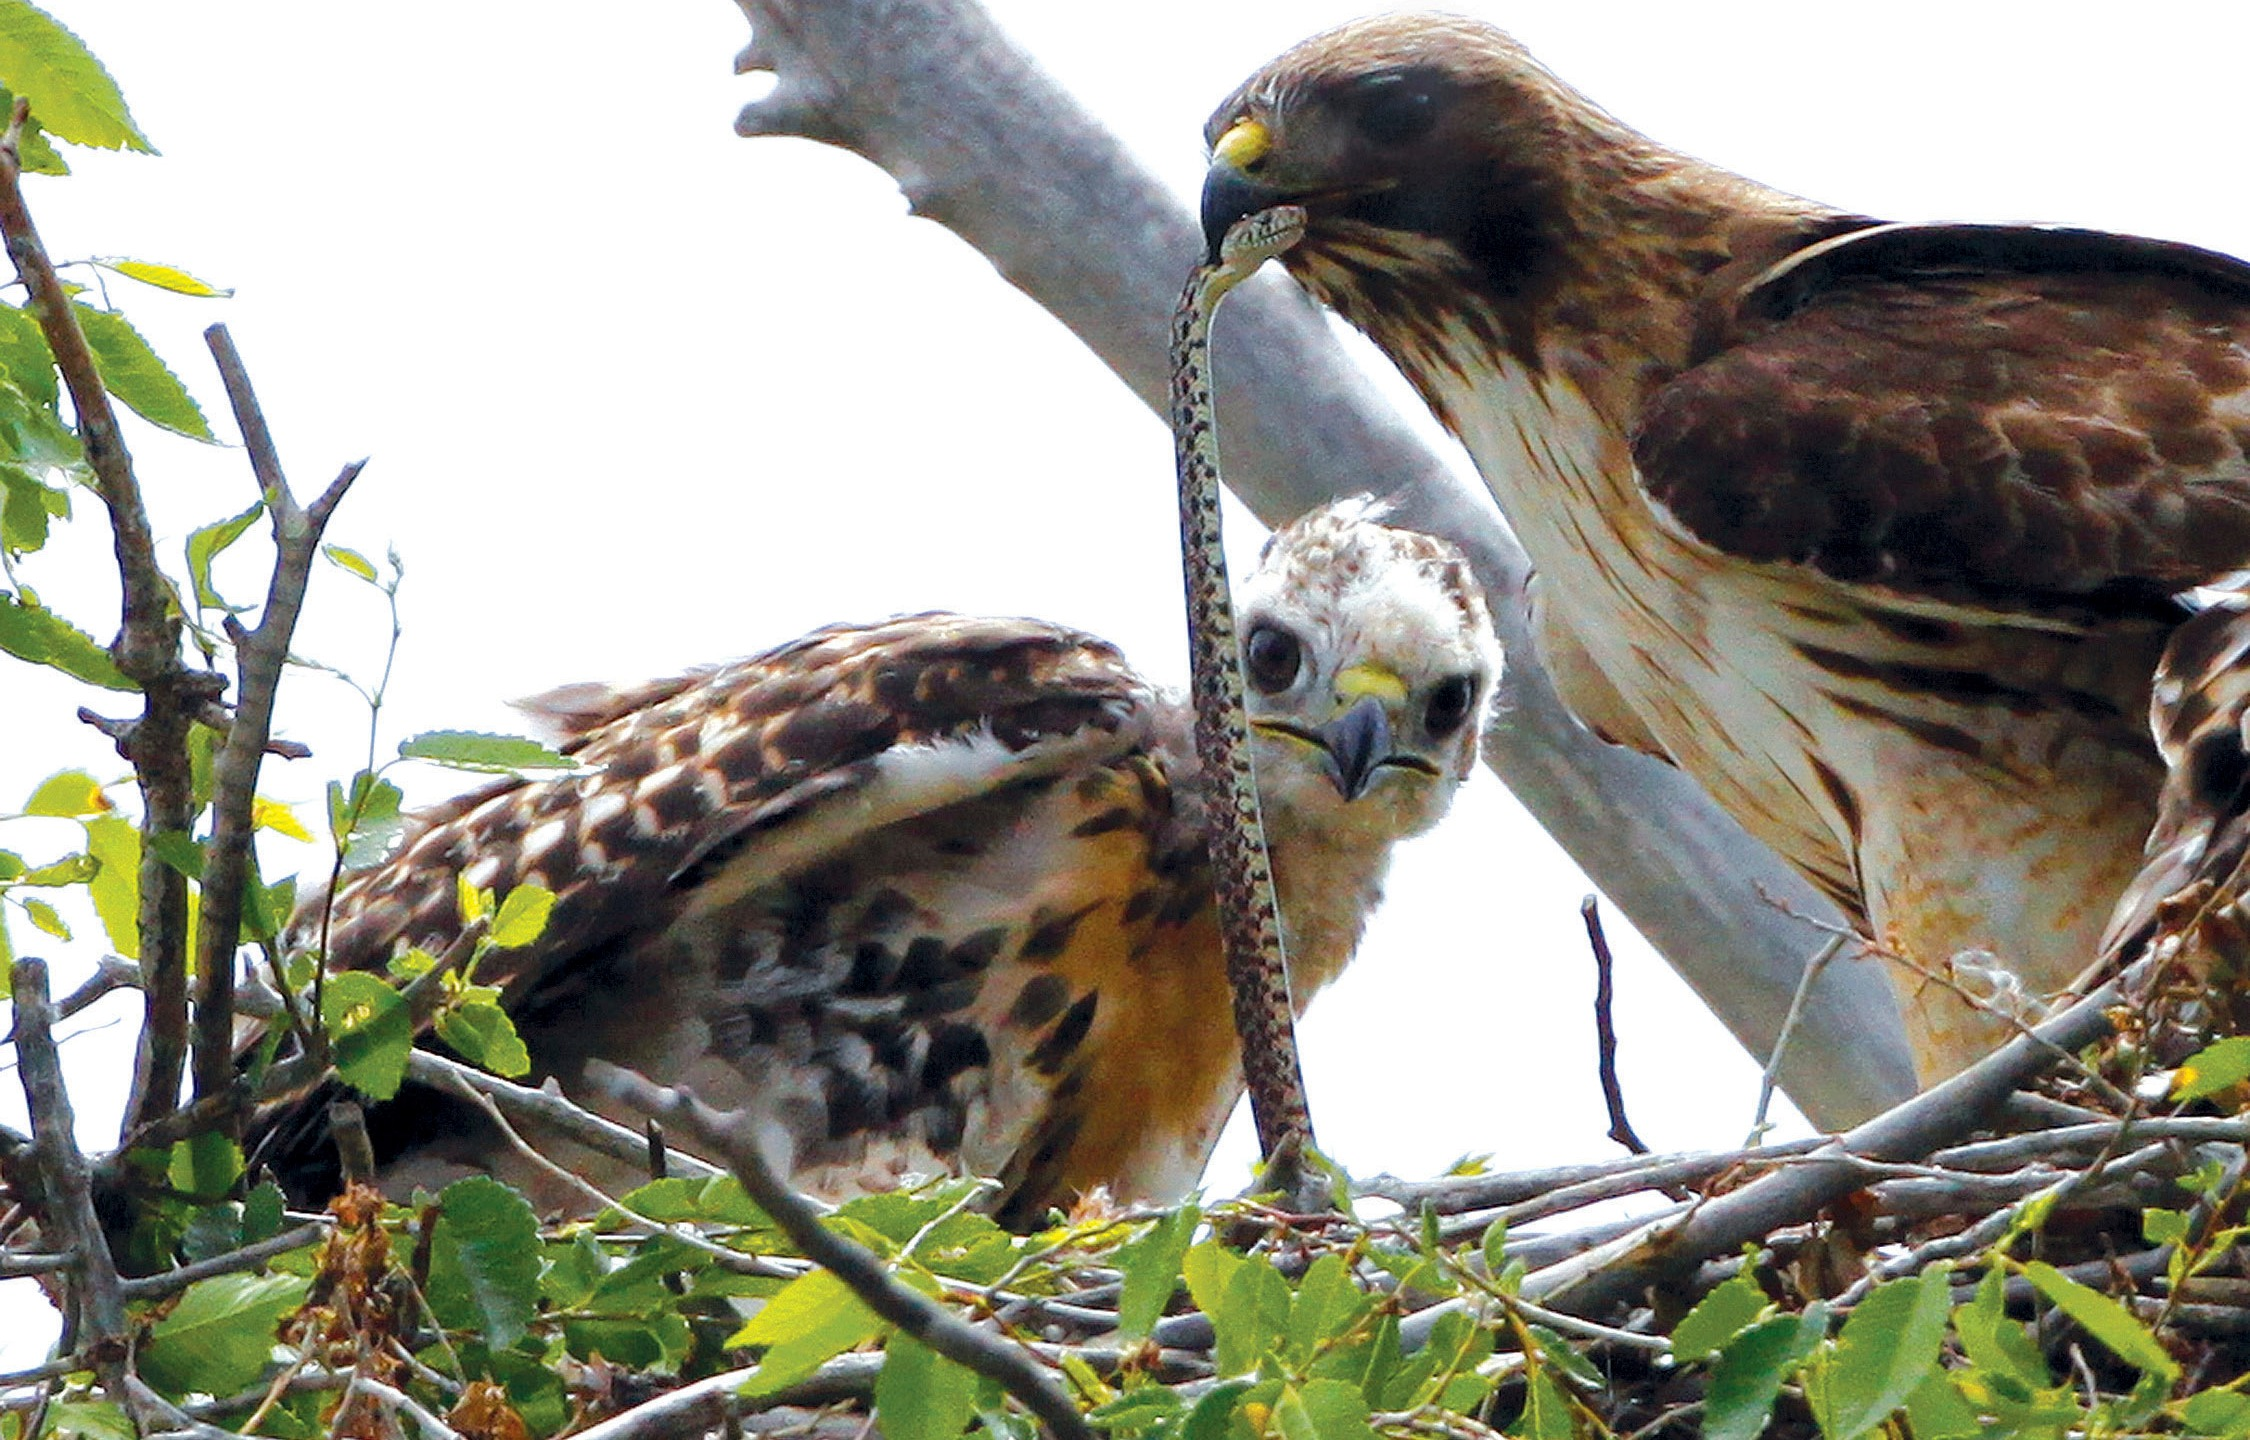 This June 5, 2009, file photo shows a Redtail hawk feeding a snake to one of her young ones nested at the Rocky Mountain Wildlife Refuge in Commerce City, Colo. (Ed Andrieski/AP Photo)